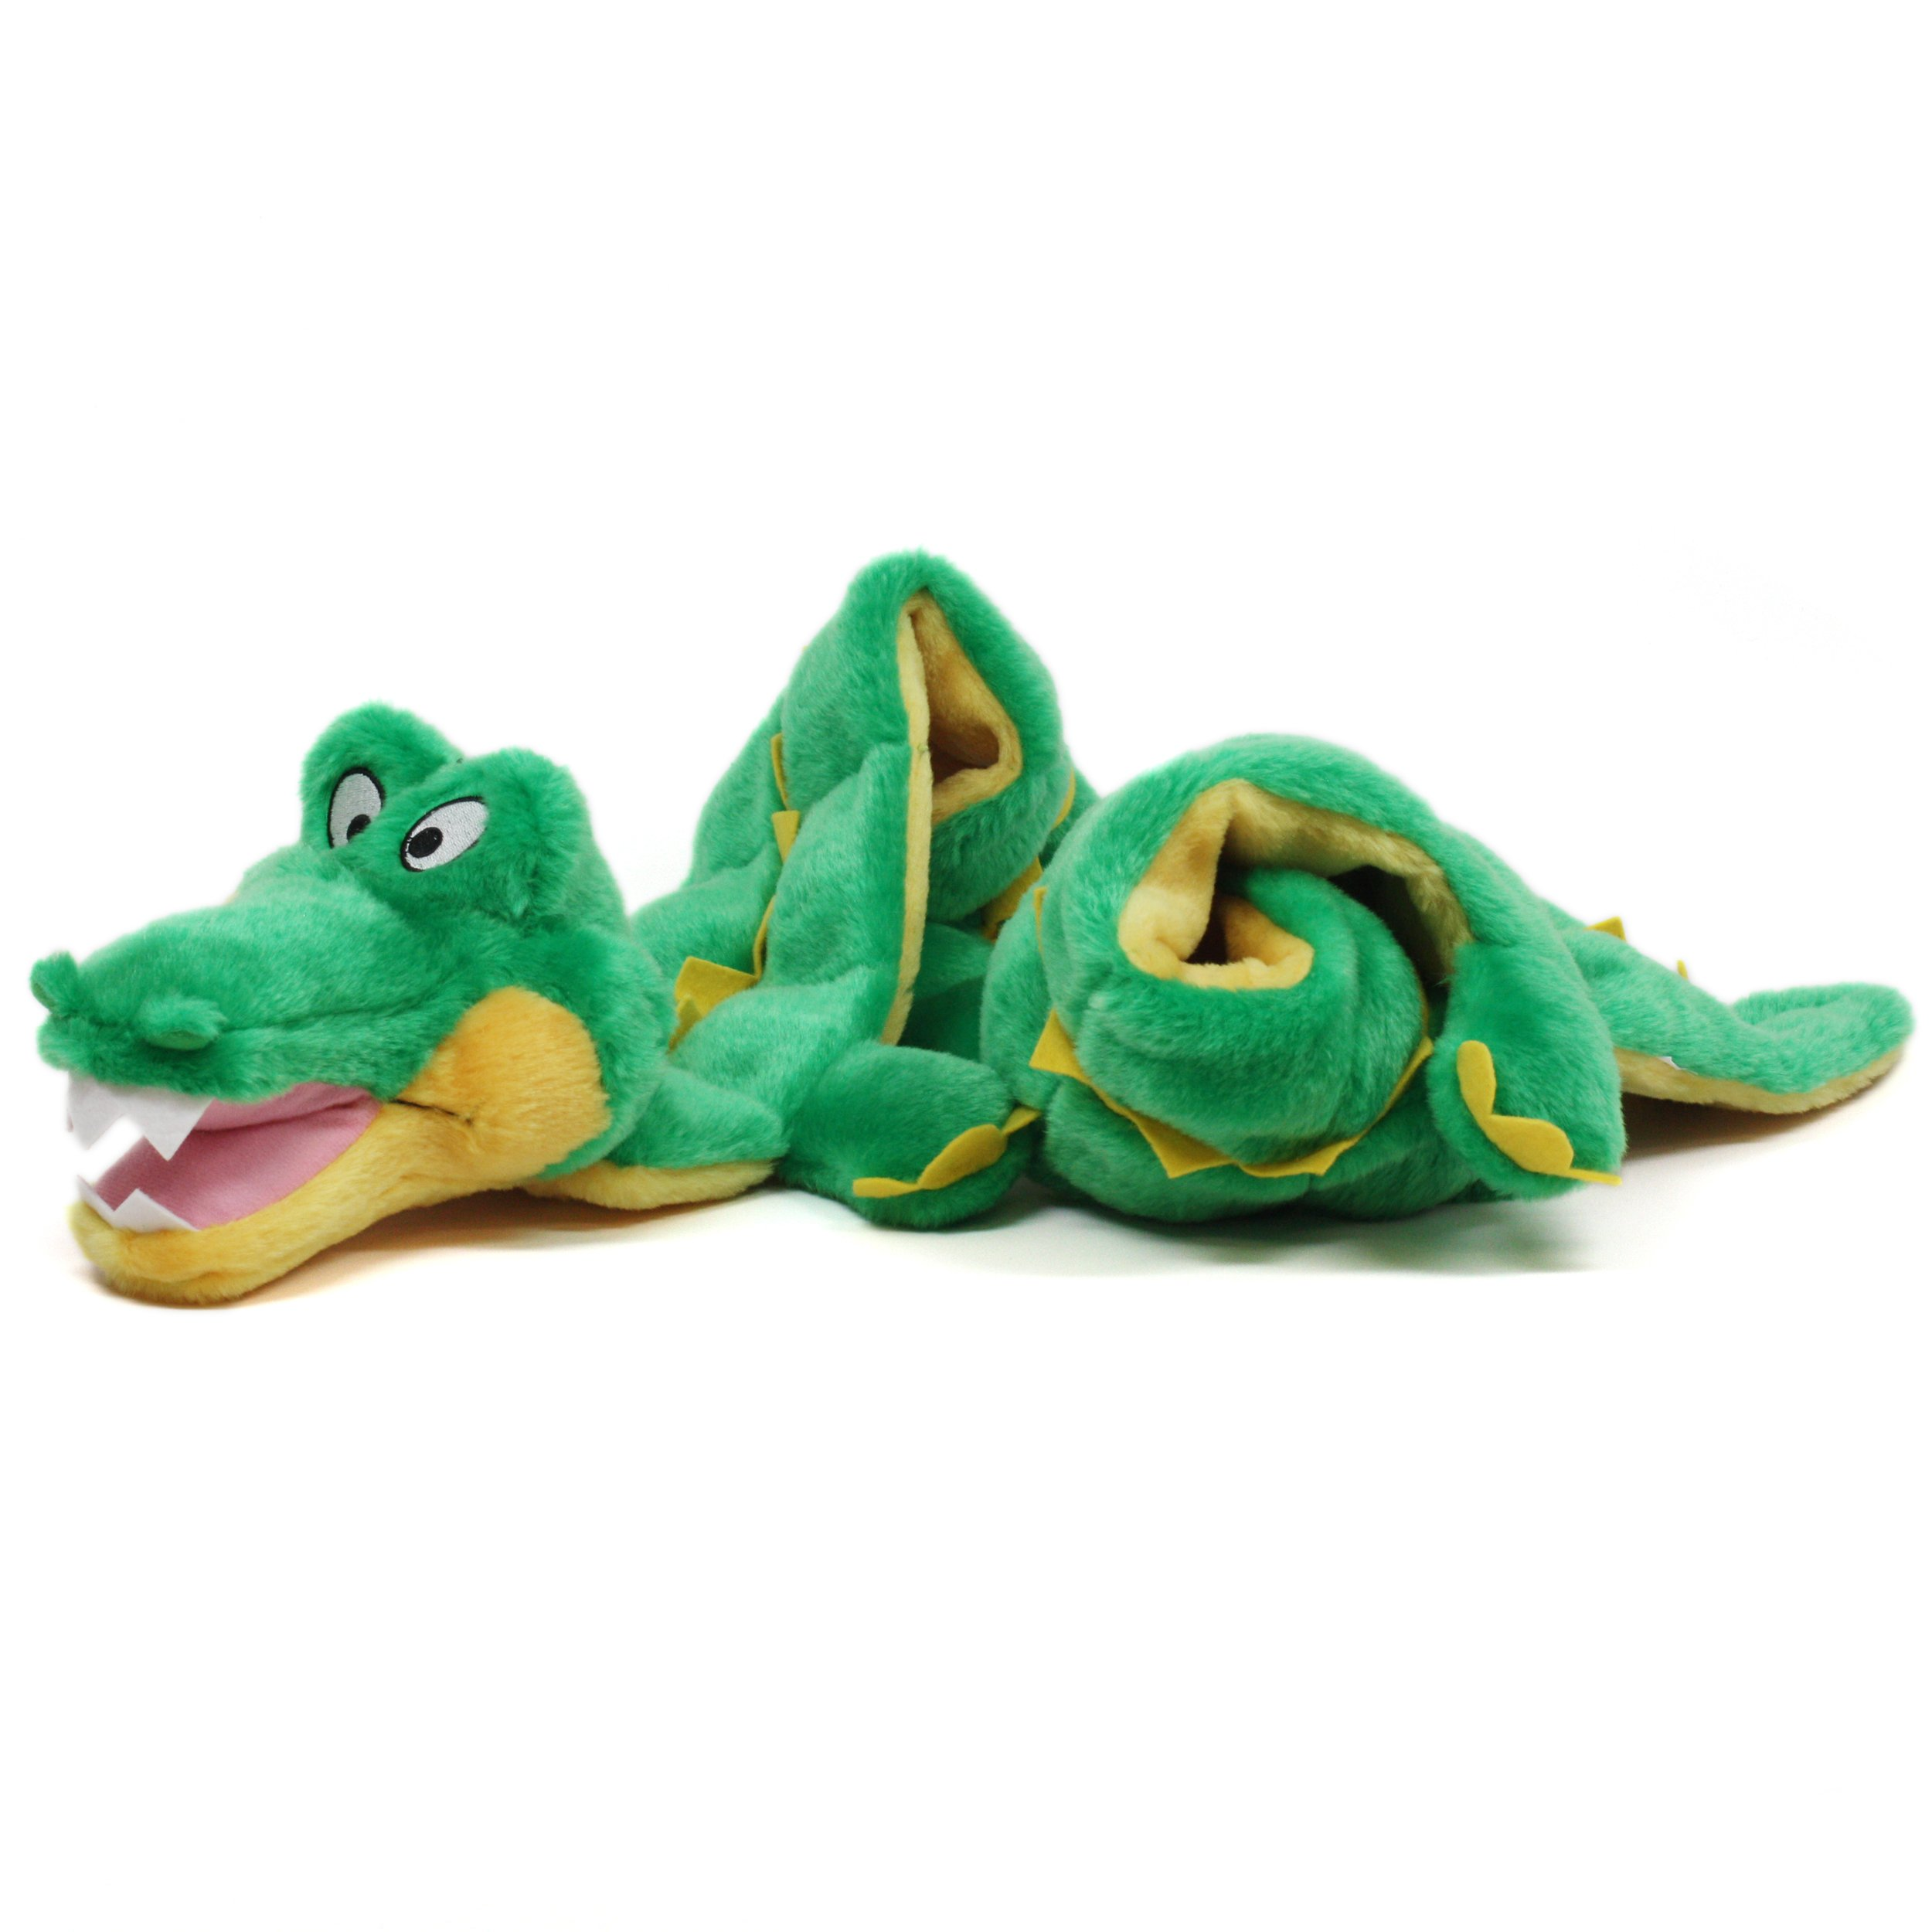 Outward Hound Squeaker Matz Ginormous Dog Squeaky Toy Large Toy for Dogs by, 32 Squeaker, Gator